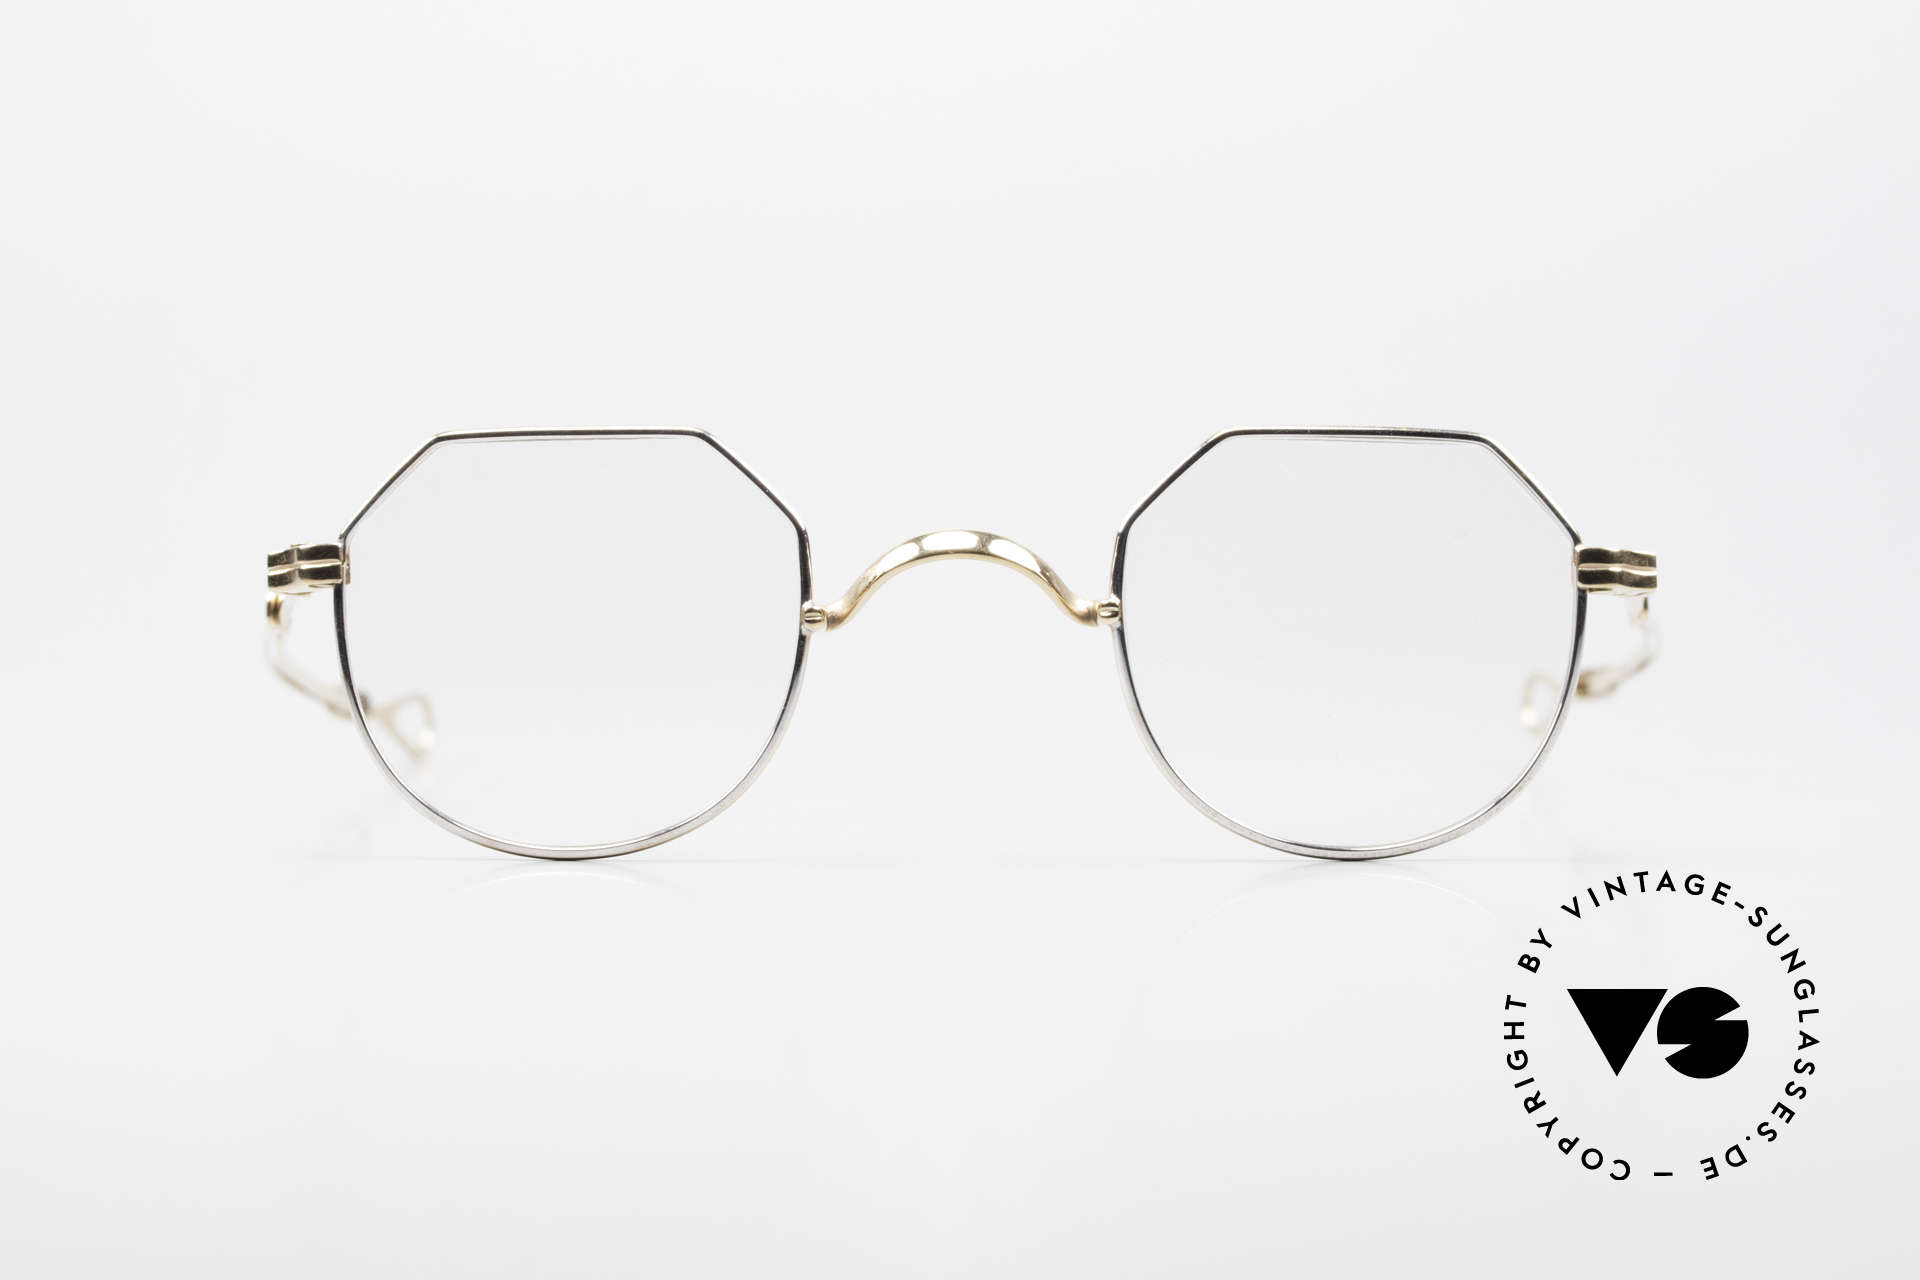 Lunor I 18 Telescopic Glasses With Telescopic Arms, the (arms) temples are extendable like a telescope, Made for Men and Women